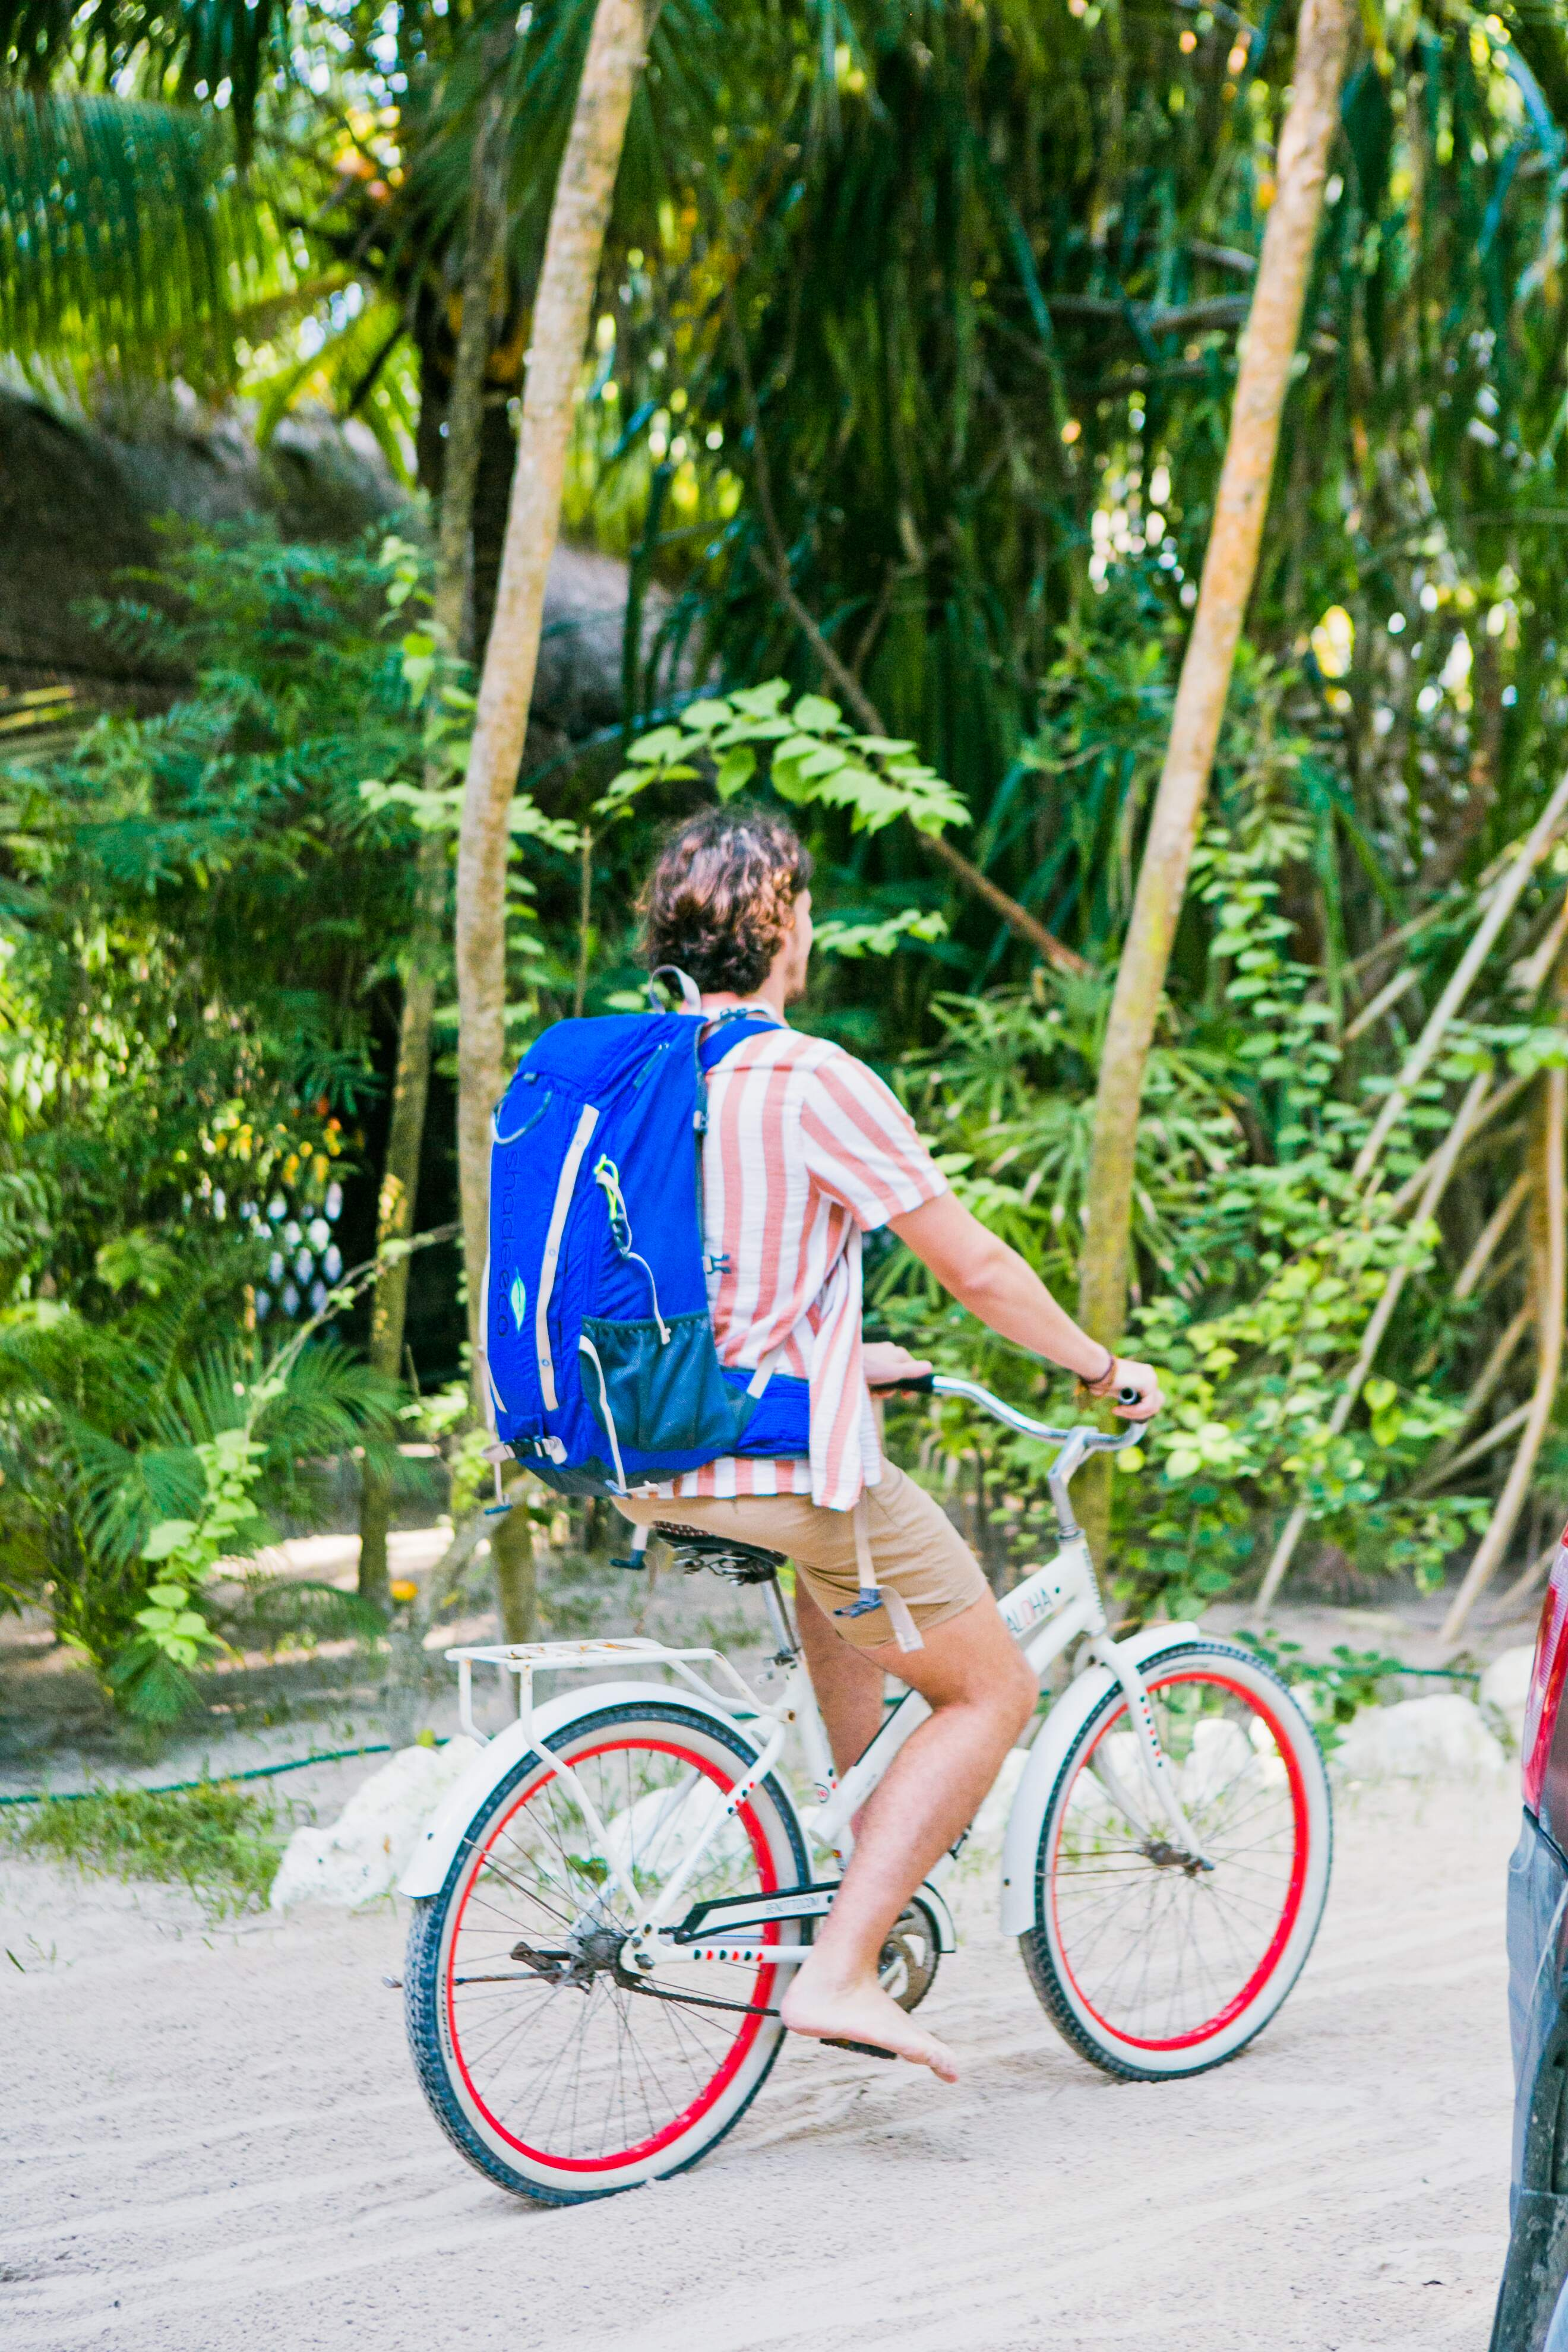 Riding bicycle with shadeeco backpack